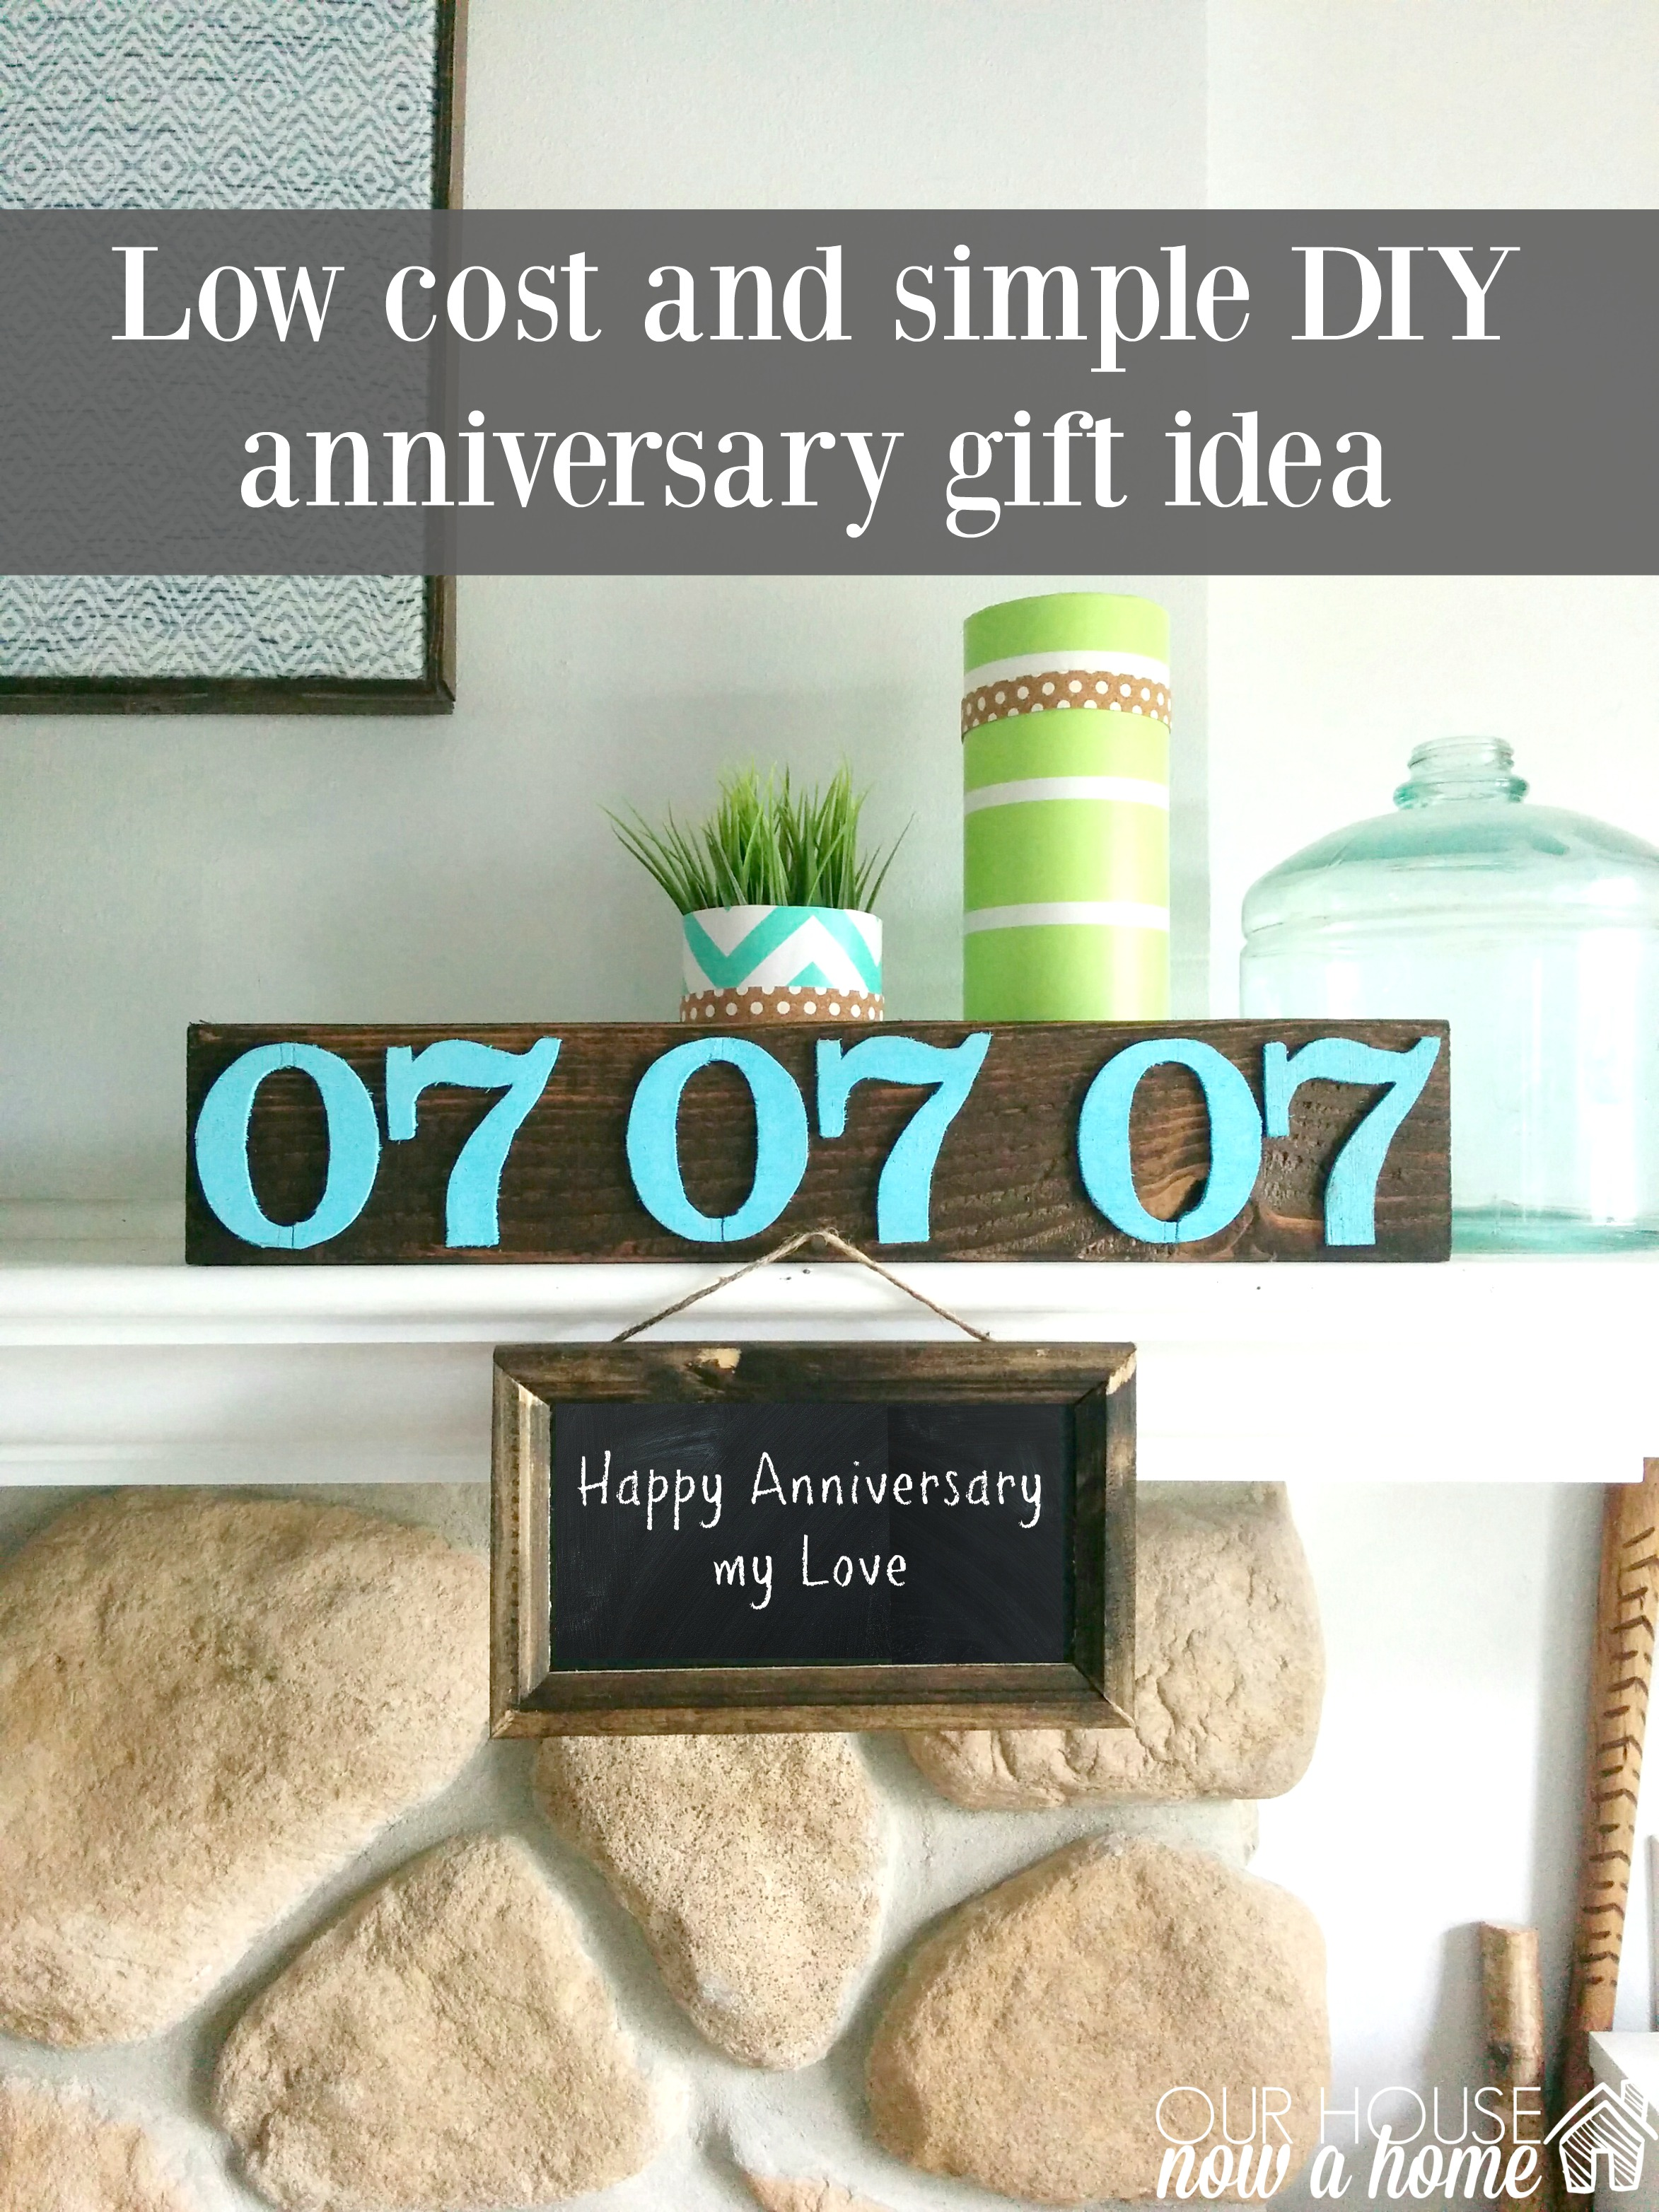 Diy And Low Cost Anniversary Gift Ideas Our House Now A Home